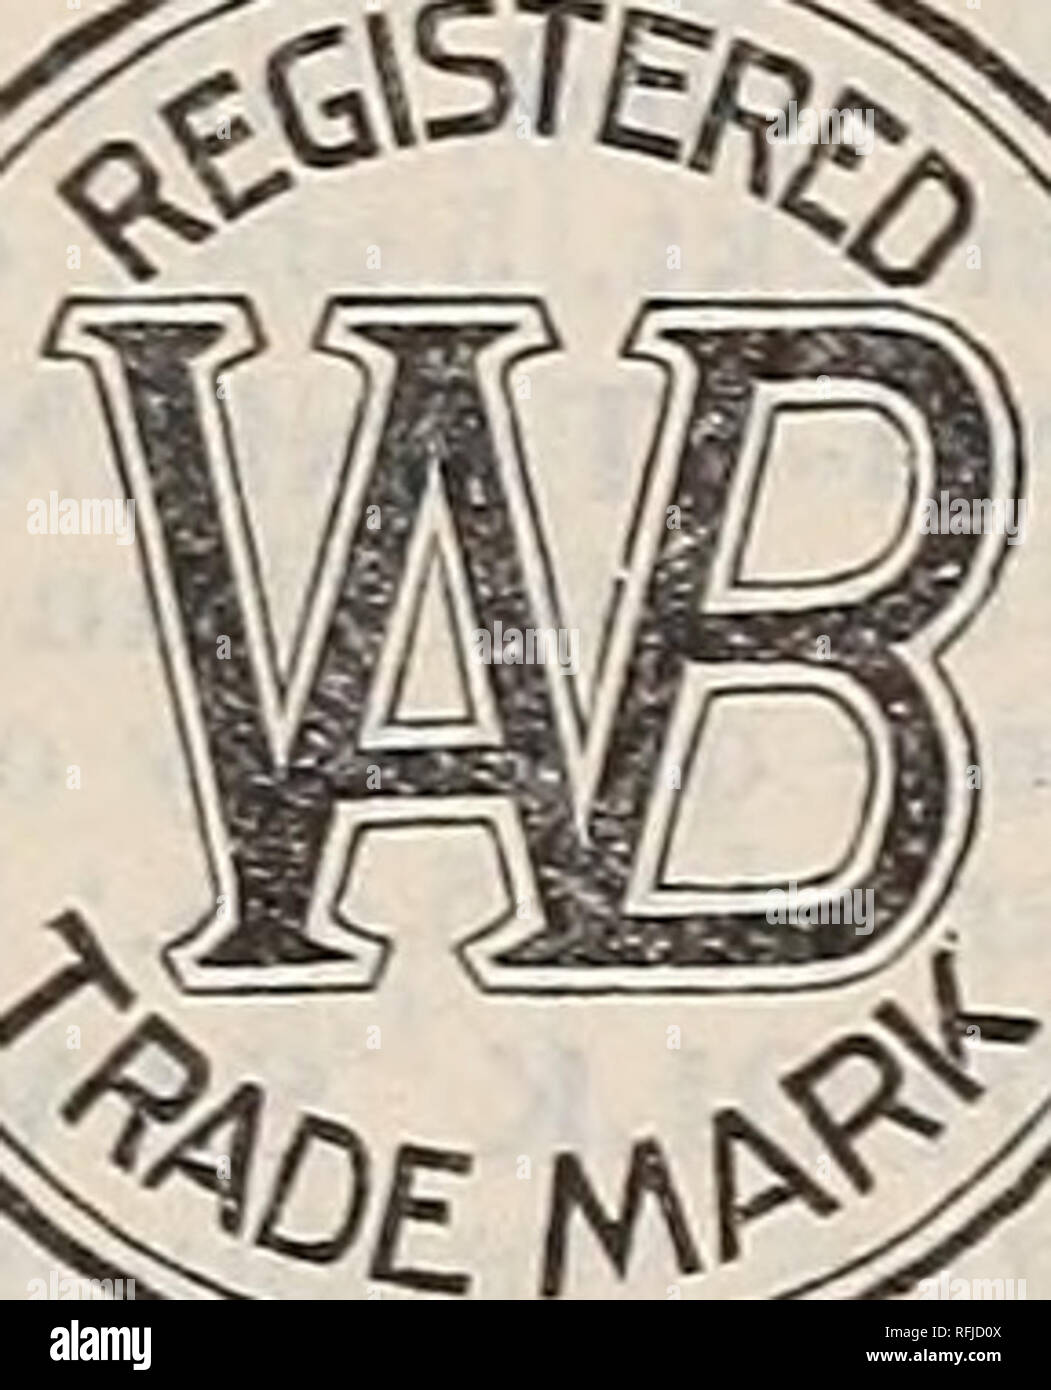 """. Burpee's farm annual for 1900. Nursery stock Pennsylvania Philadelphia Catalogs; Vegetables Seeds Catalogs; Flowers Seeds Catalogs; Bulbs (Plants) Catalogs. Each of the above, except Osaka, 5 cents per packet. BURPEE'S SEEDS are sold in any quantity, but only under seal. They are always Genuine as dated,—if seal is unbroken.. """" 2^. Please note that these images are extracted from scanned page images that may have been digitally enhanced for readability - coloration and appearance of these illustrations may not perfectly resemble the original work.. W. Atlee Burpee Company; Burpee, W. At - Stock Image"""